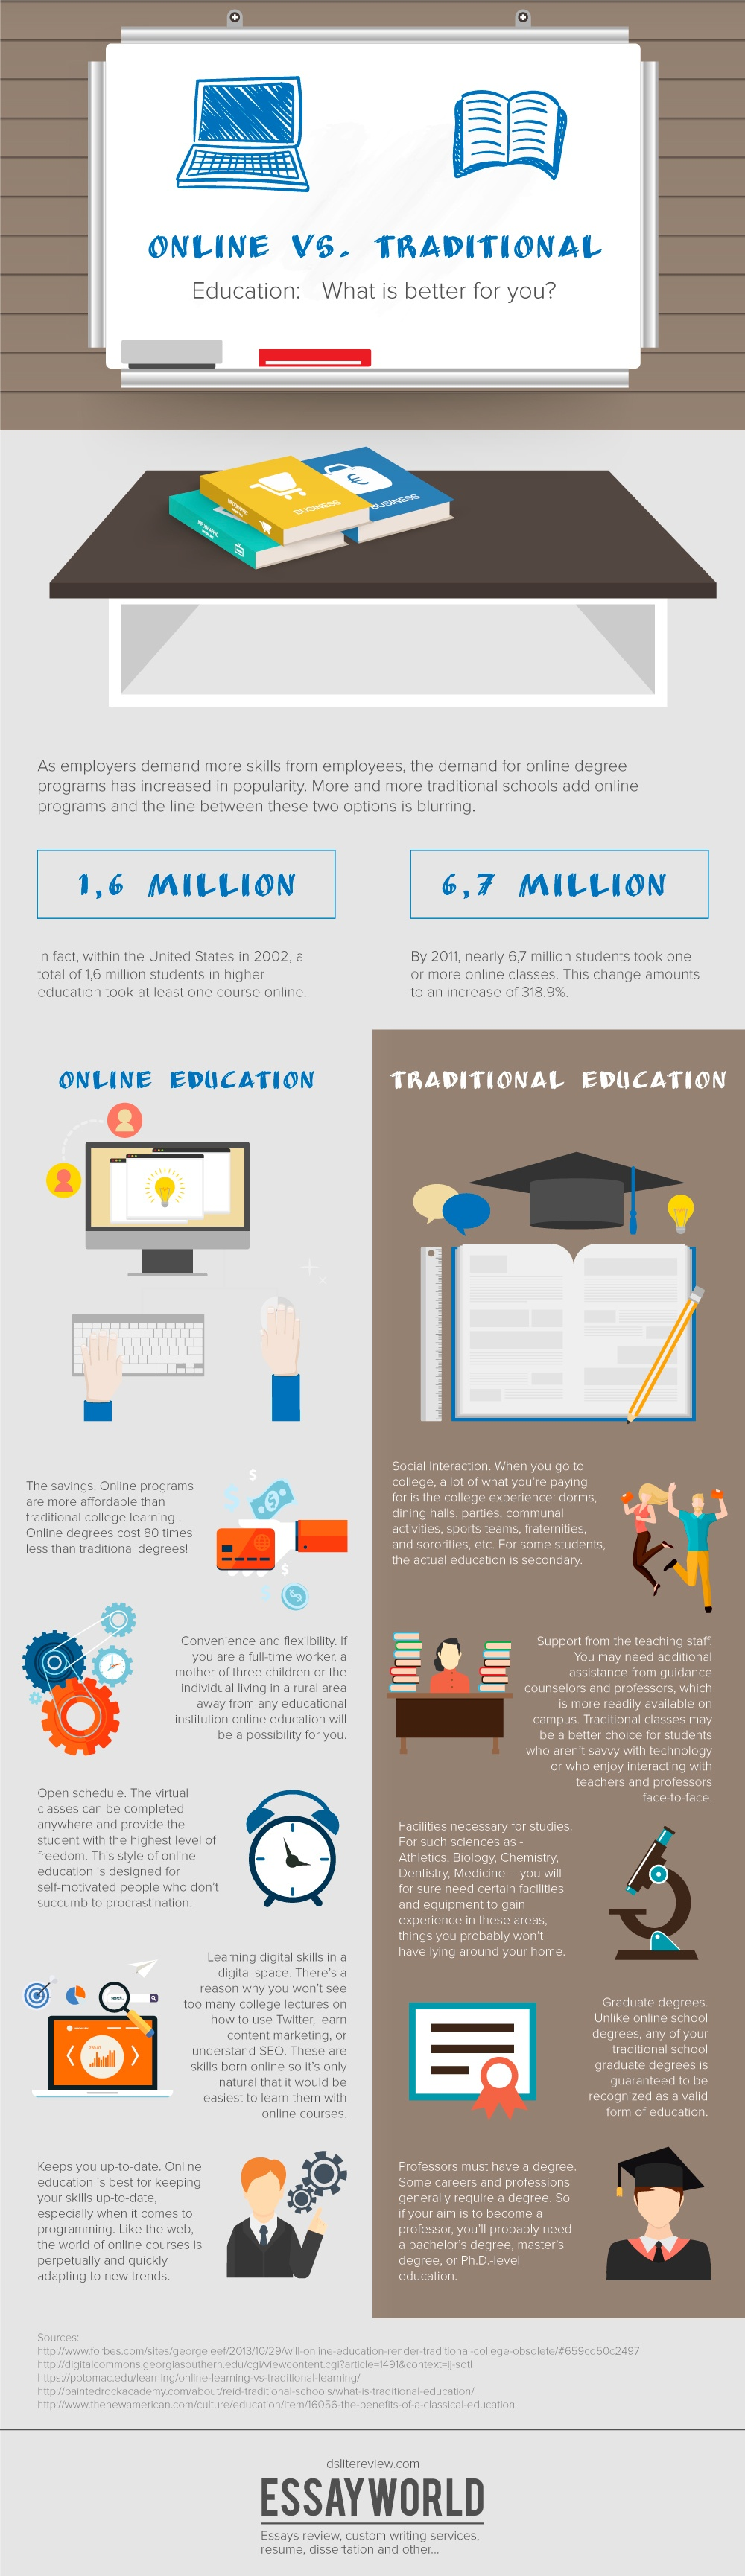 online vs traditional education Often, comparisons between traditional modalities of higher education reflect the researchers bias and rarely dig into the question of why alternative modalities exist eighteen years ago i began teaching online and was immediately flooded with warnings from education colleagues and associates: they.